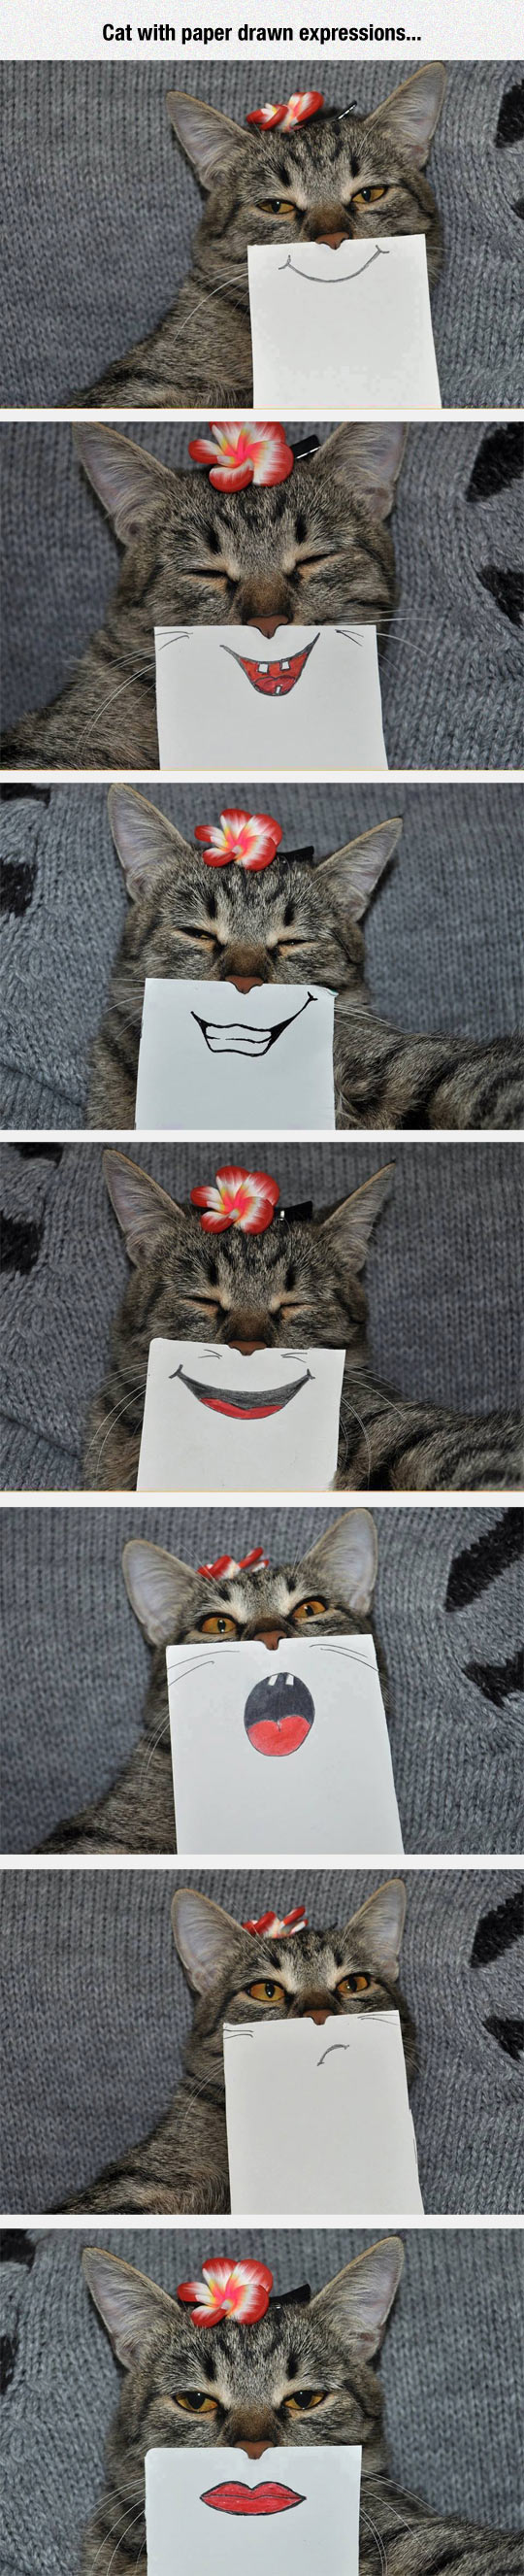 cool-cat-drawing-mouth-expressions